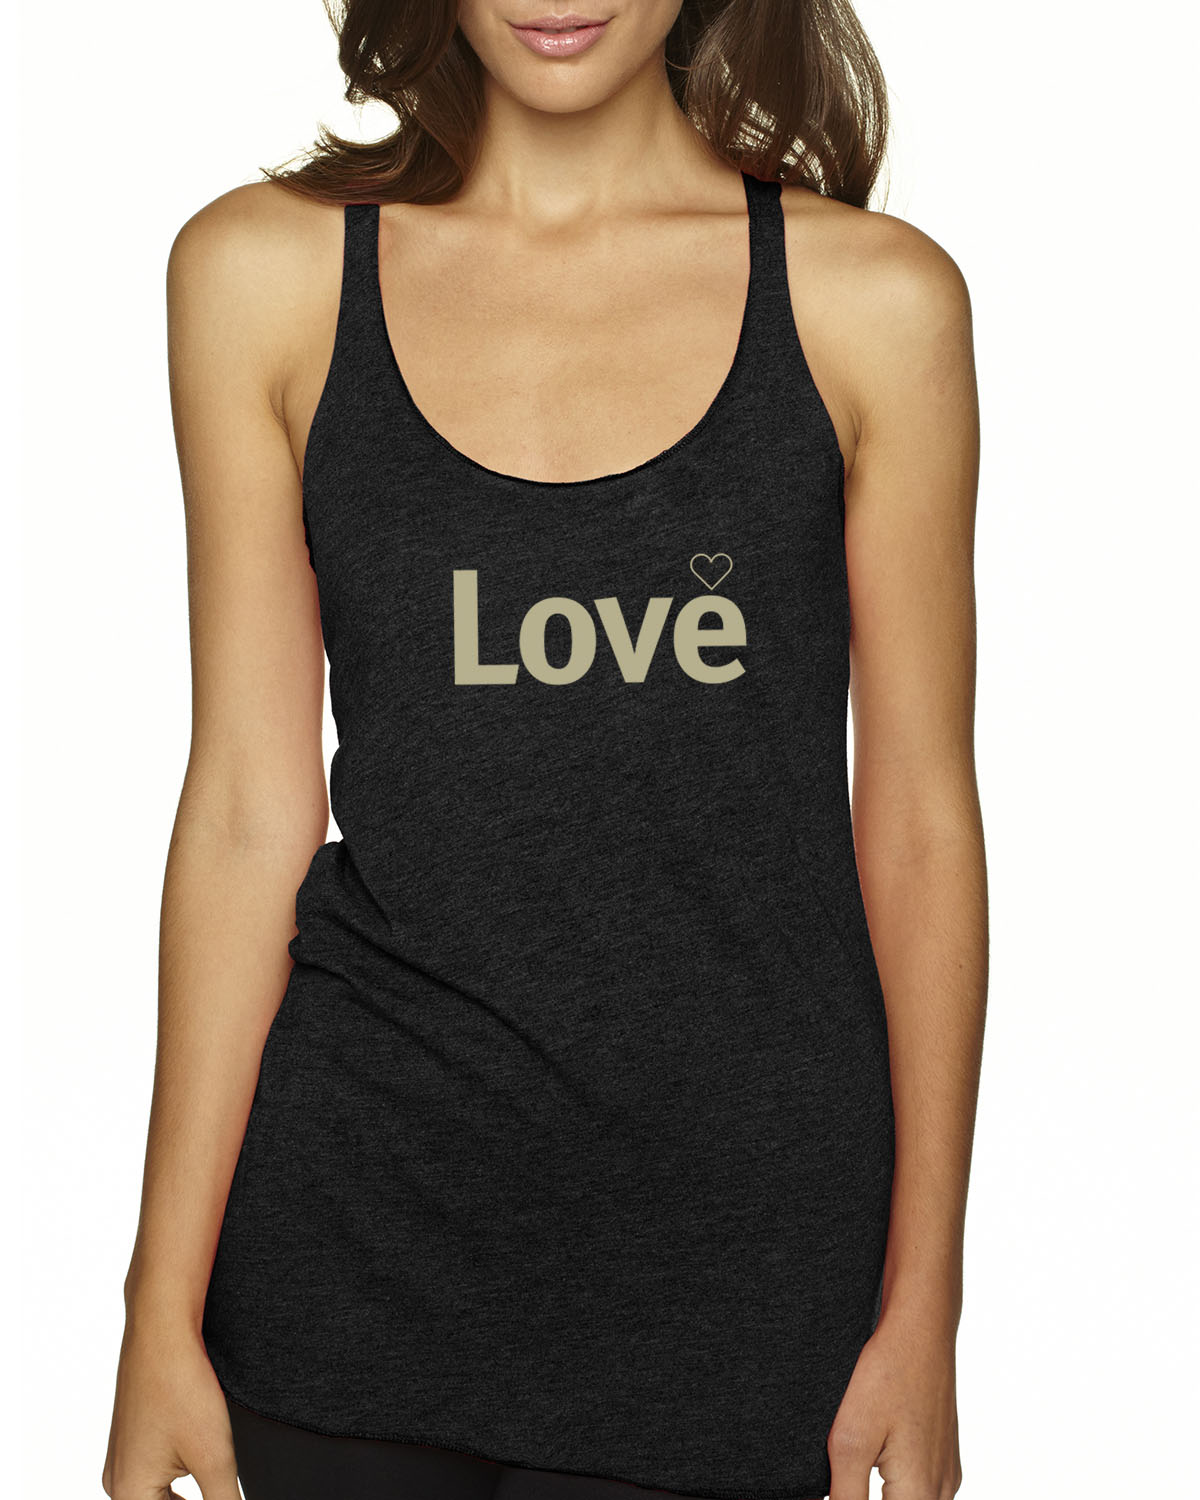 Women's Tri-blend Racer-back tank top (Vintage Black)